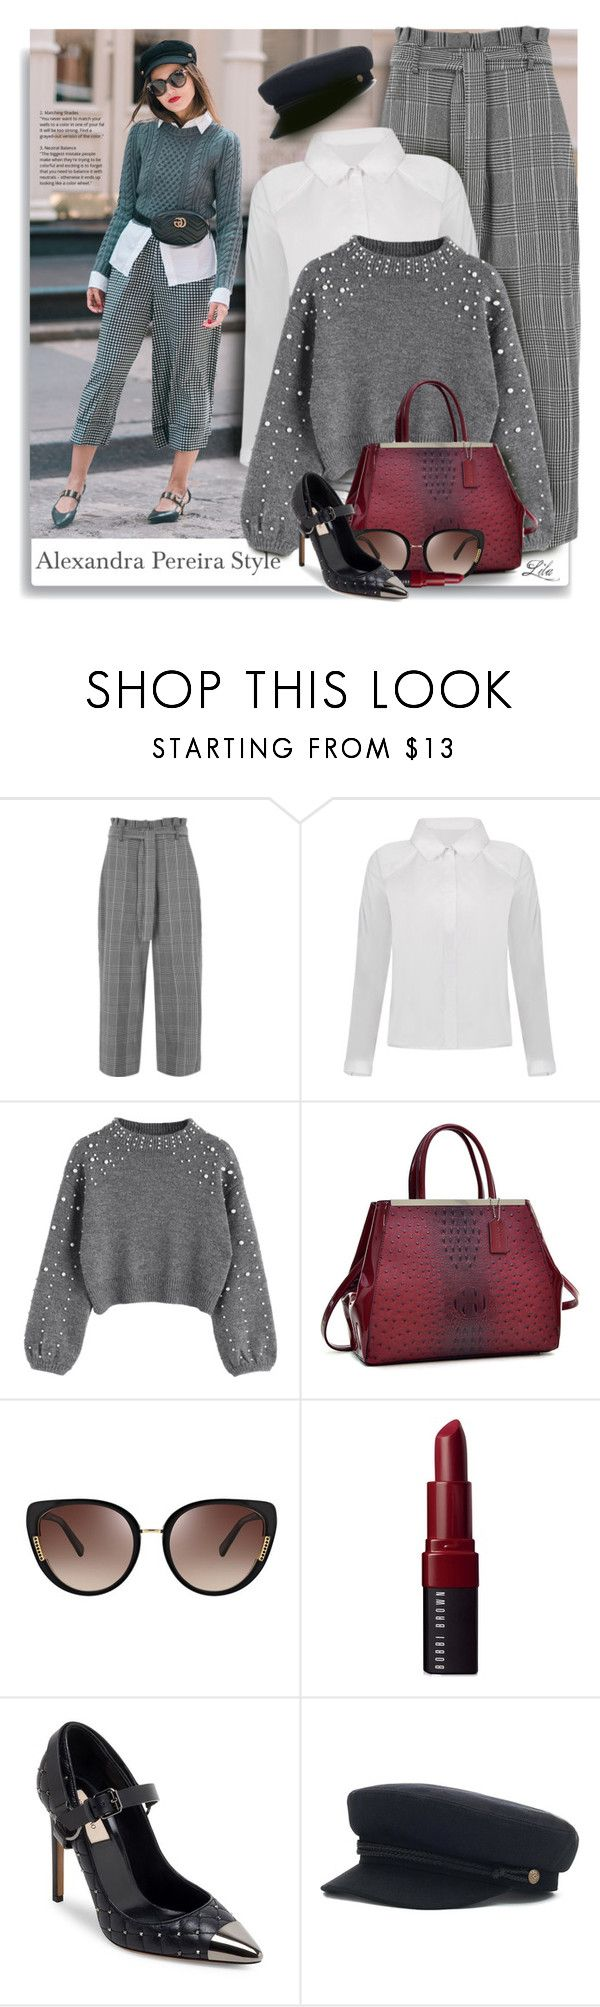 """""""Alexandra Pereira - Get the look"""" by breathing-style ❤ liked on Polyvore featuring River Island, Oscar de la Renta, Bobbi Brown Cosmetics and Valentino"""